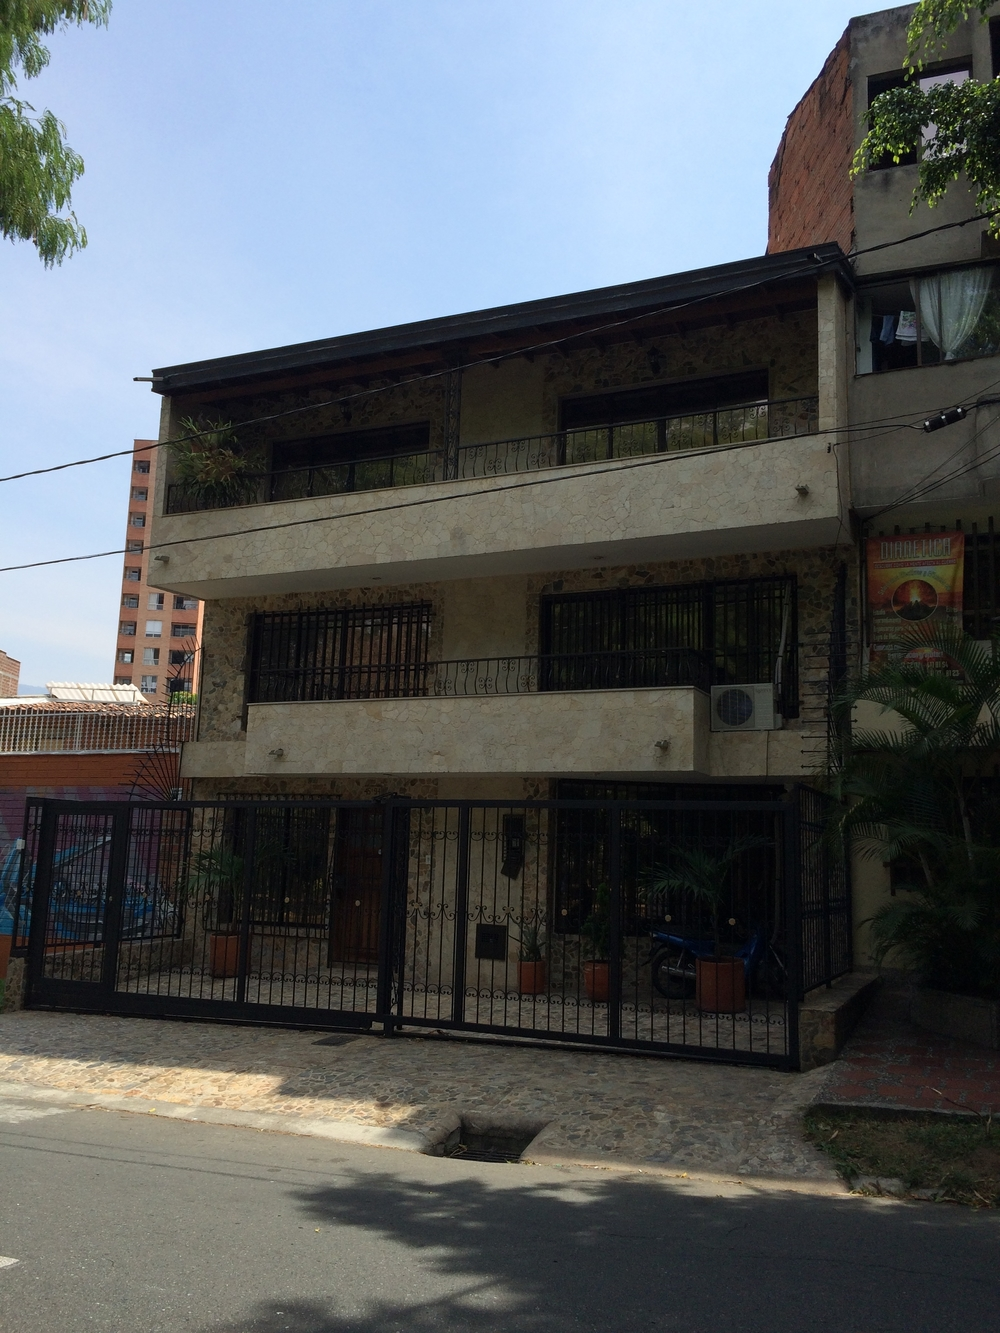 The apartment building where Pablo Escobar was eventually found and killed.